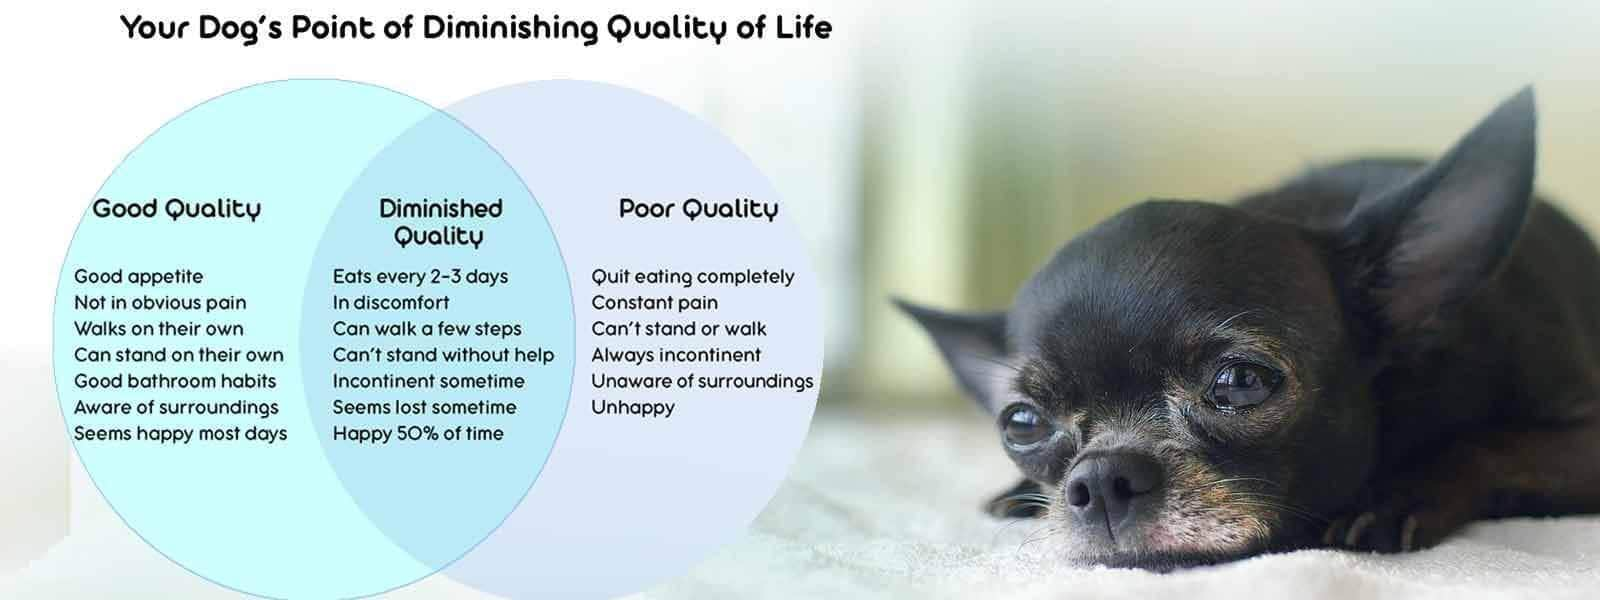 Quality of Life Chart To Evaluate Your Dog's Quality of Life